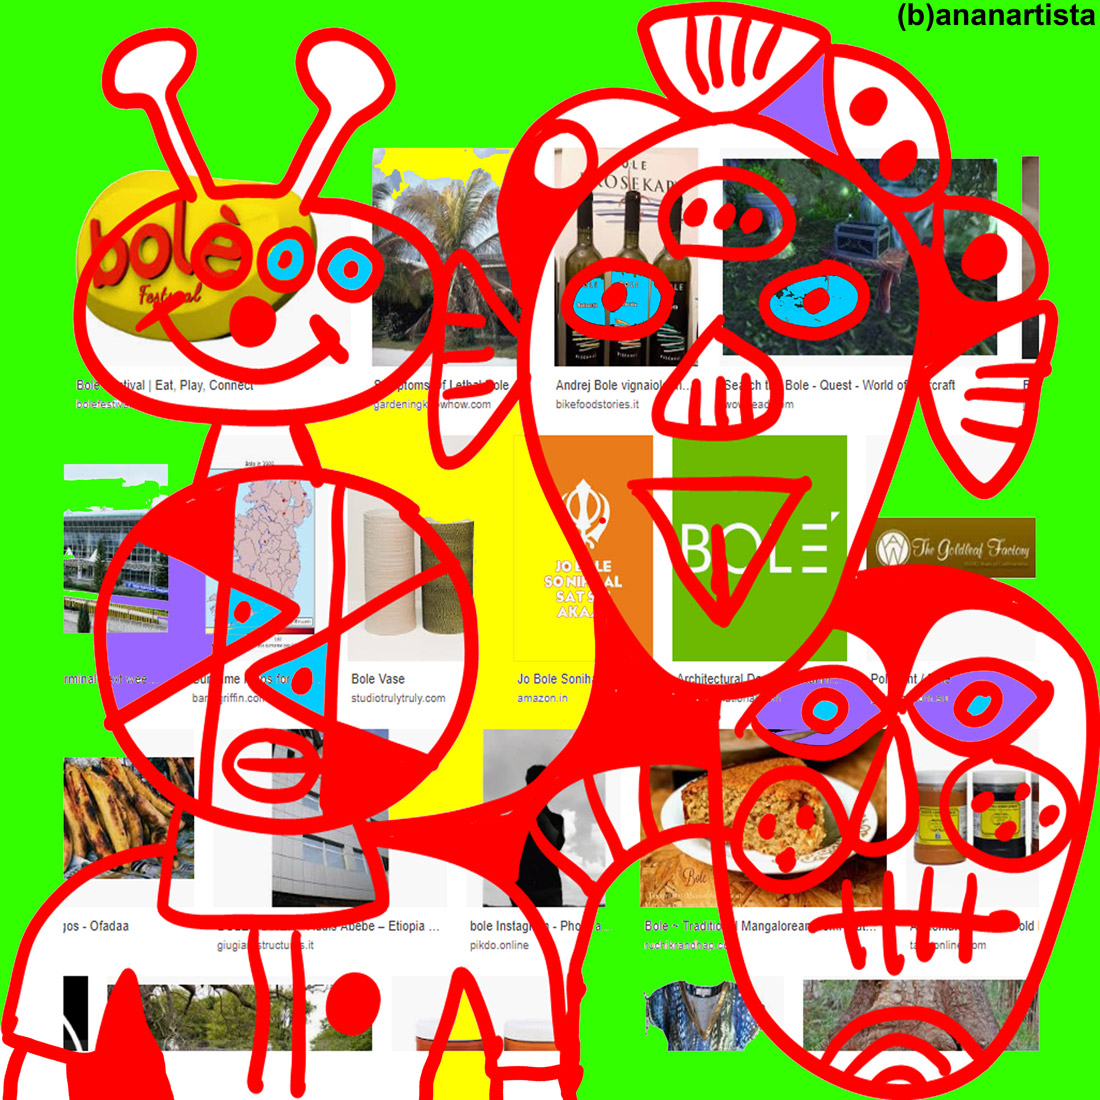 eat play connect - digital collage by (b)ananartista sbuff